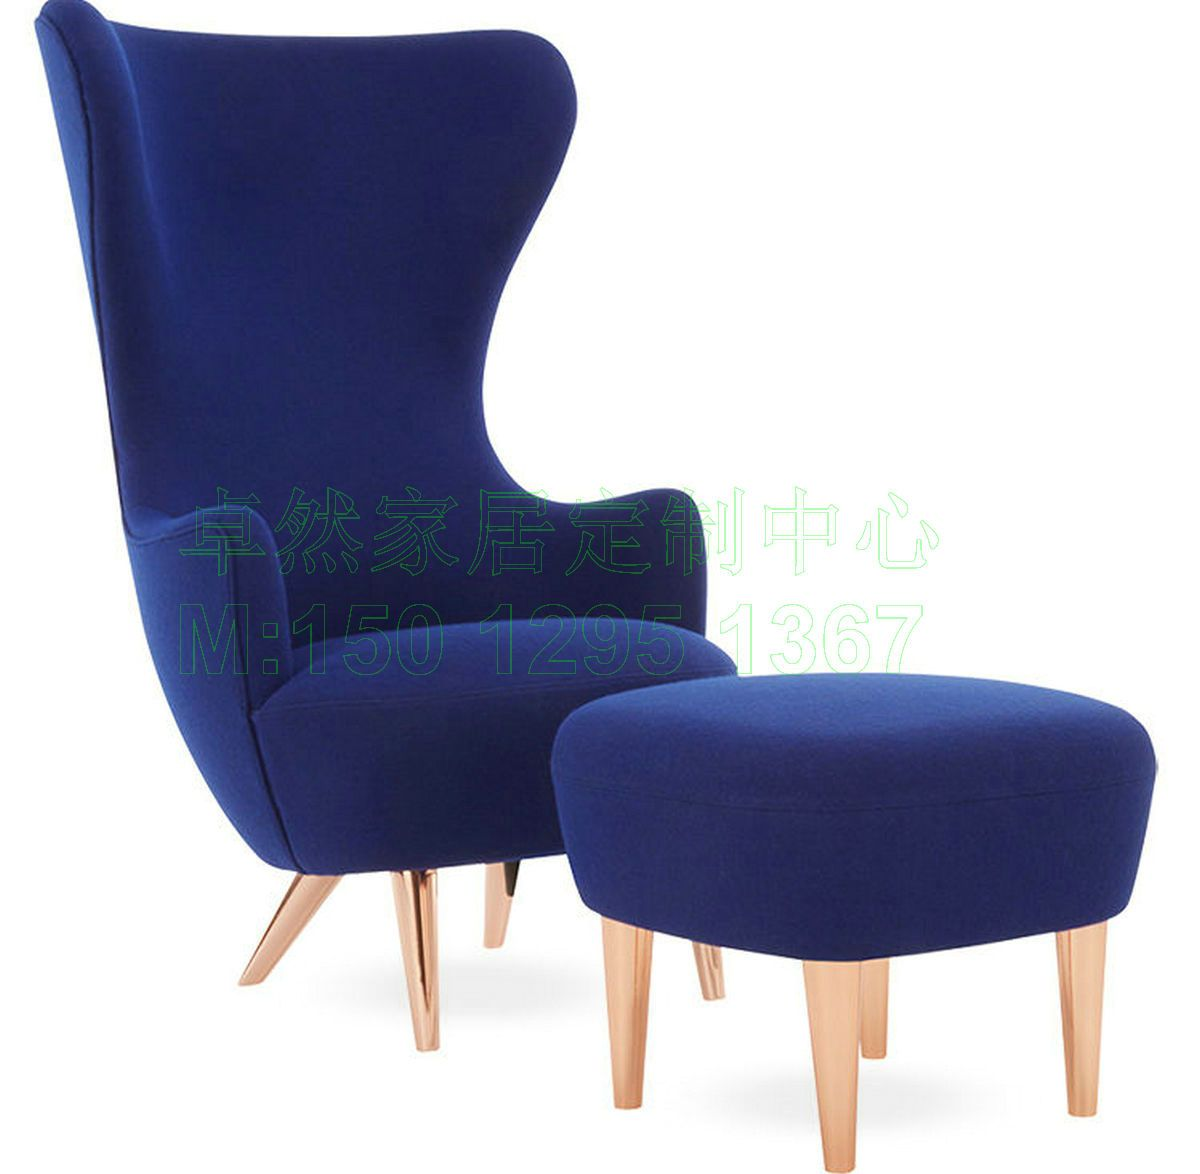 Groovy High Back Wing Chair Img1 Jqzoom Gallery Sold High Back Machost Co Dining Chair Design Ideas Machostcouk